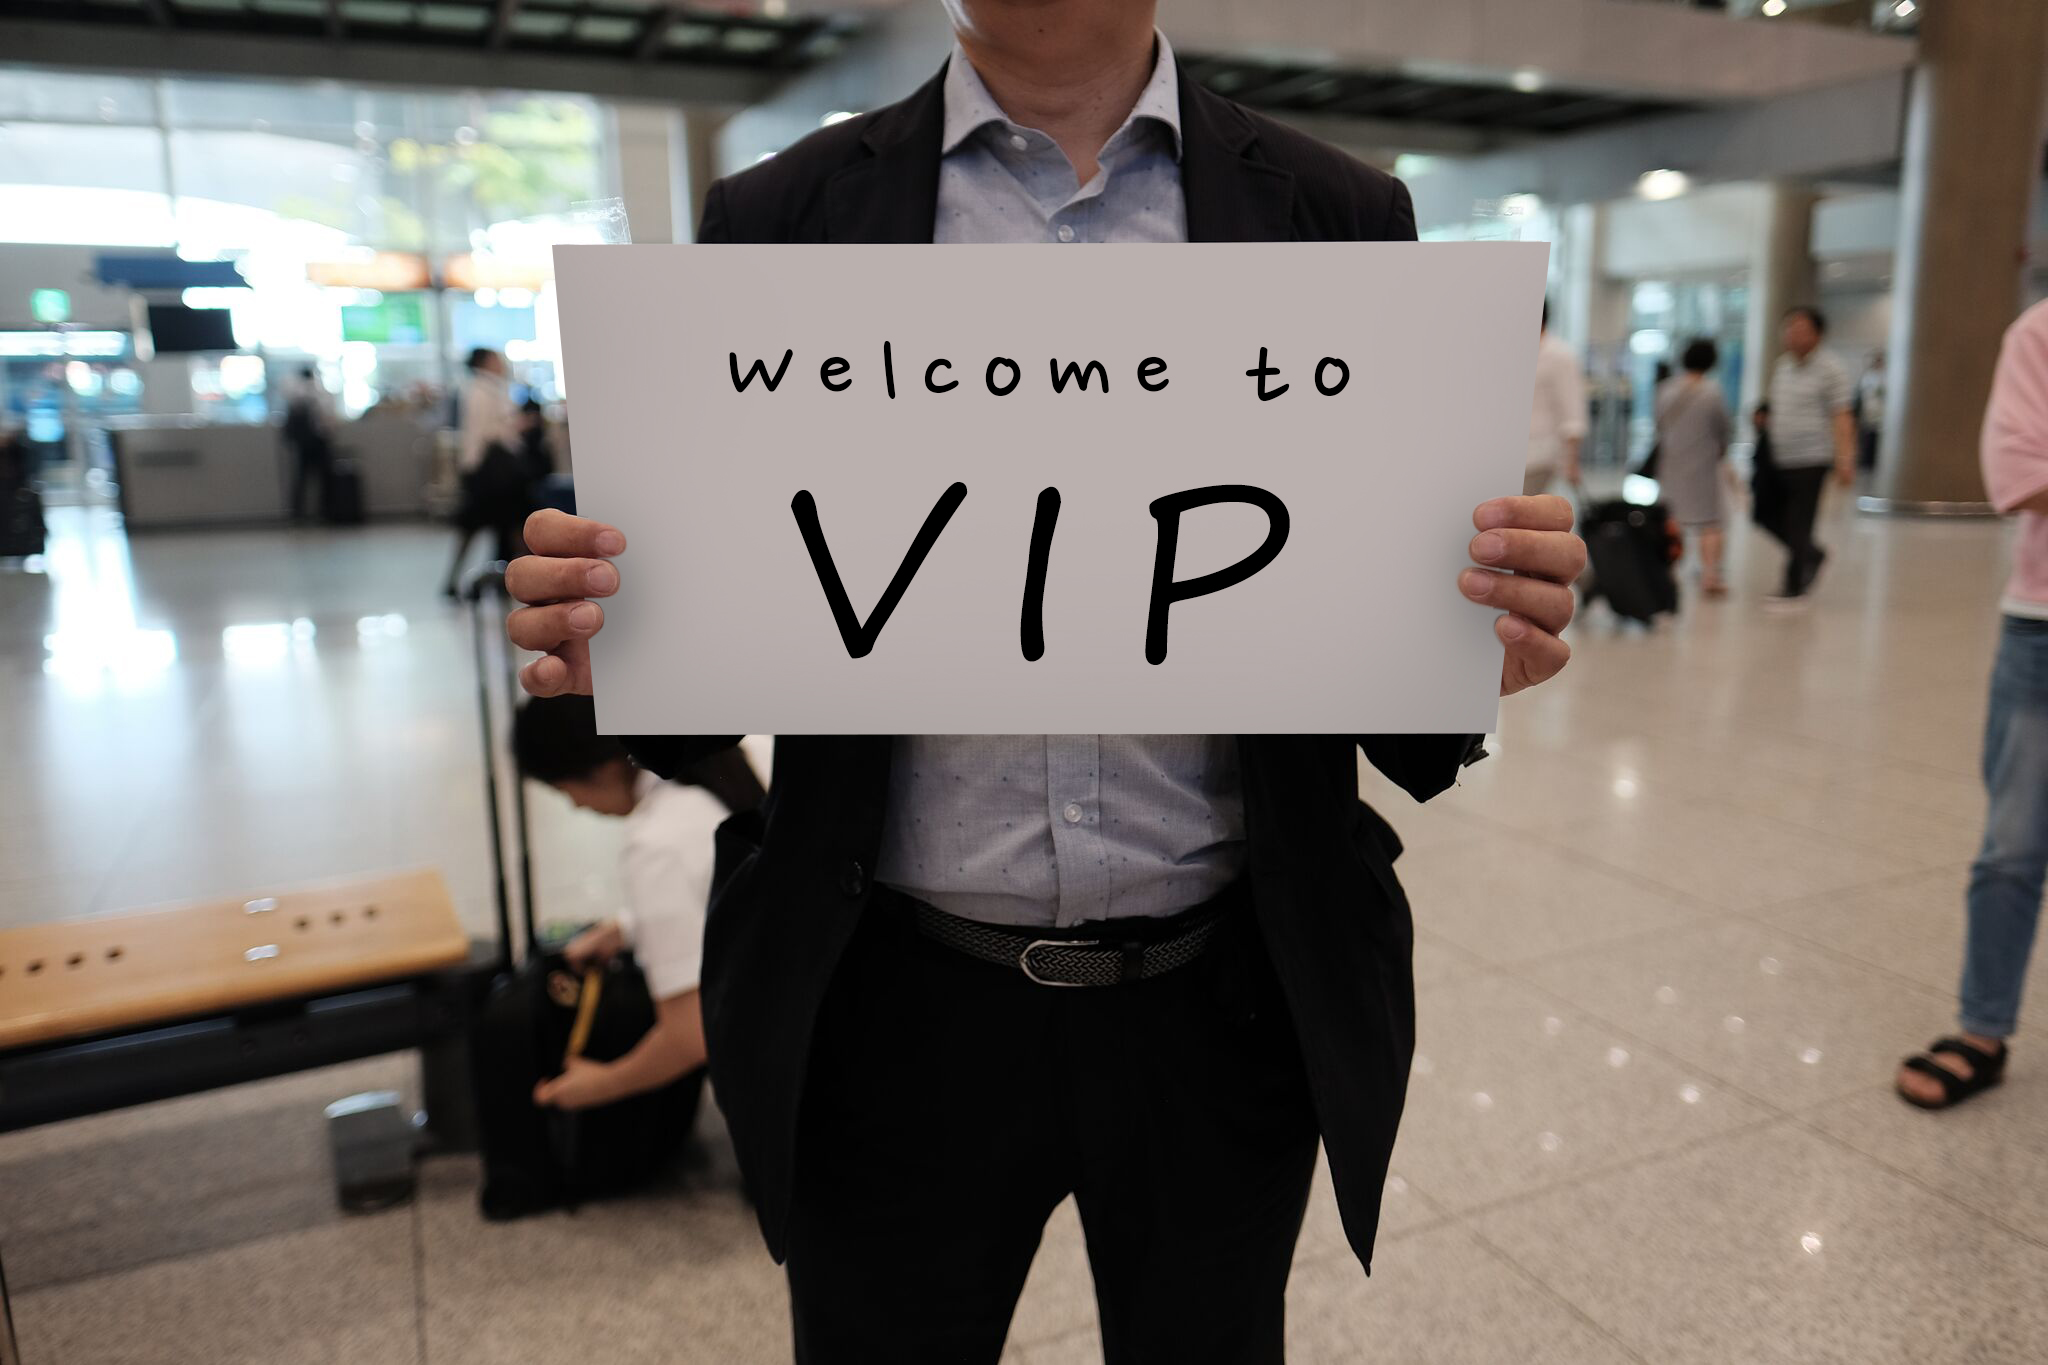 Airport Pickup Service – Vip Plastic Surgery